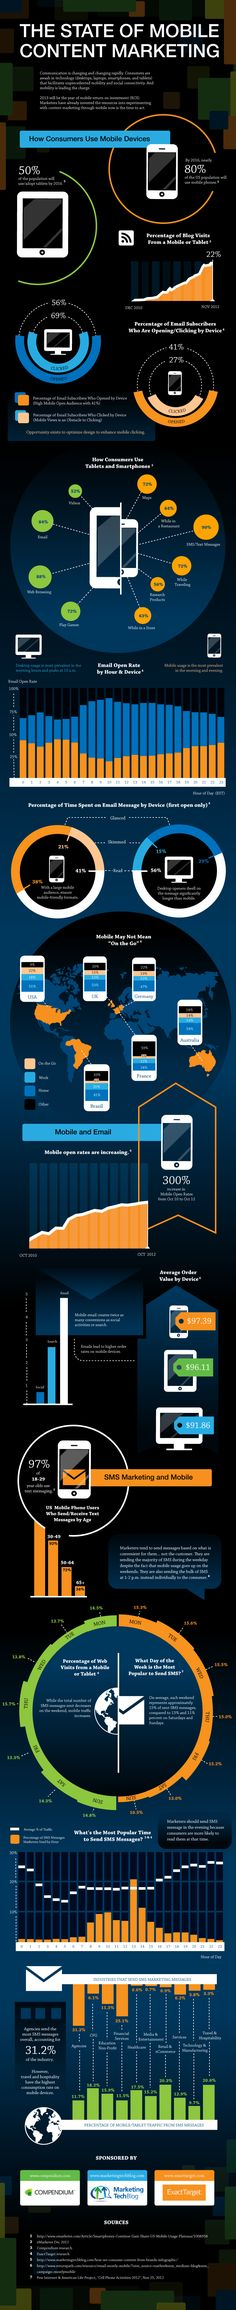 The State Of Mobile Content Marketing [INFOGRAPHIC]